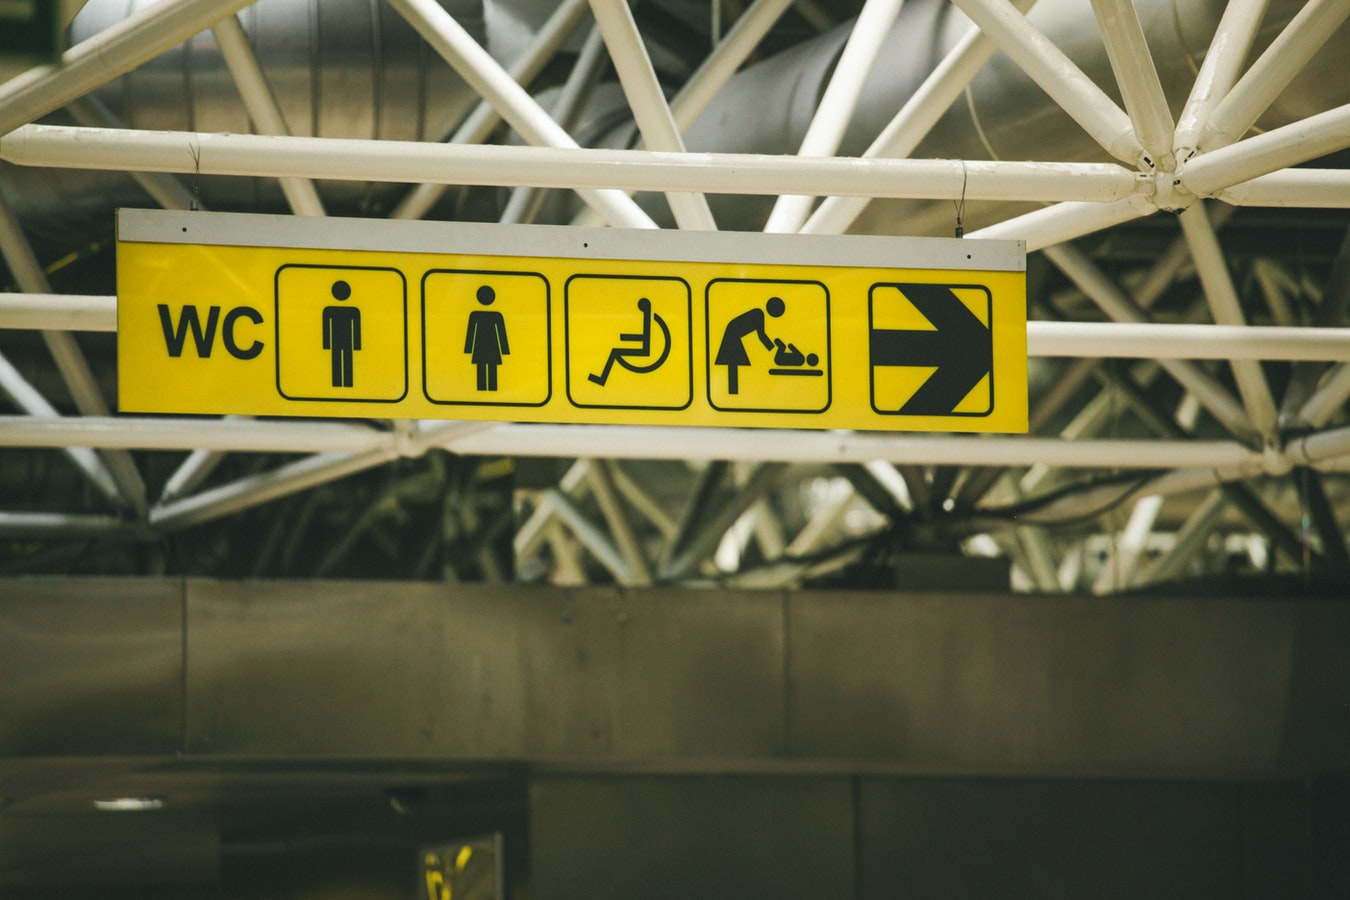 safely travel for aging and Disability